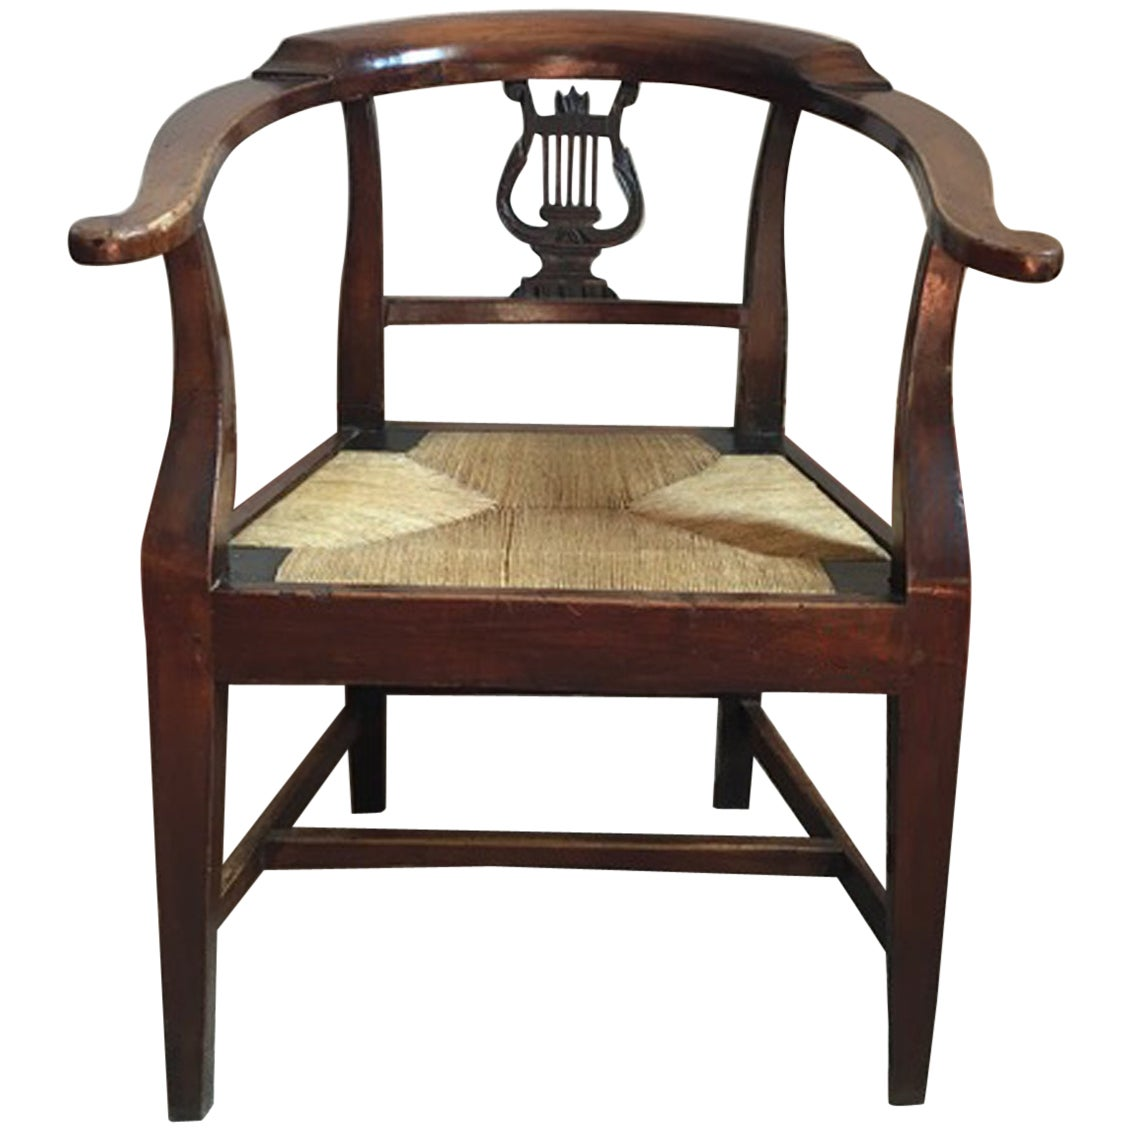 Italy 18th Century Walnut Dining Armchair with Cane Sitting